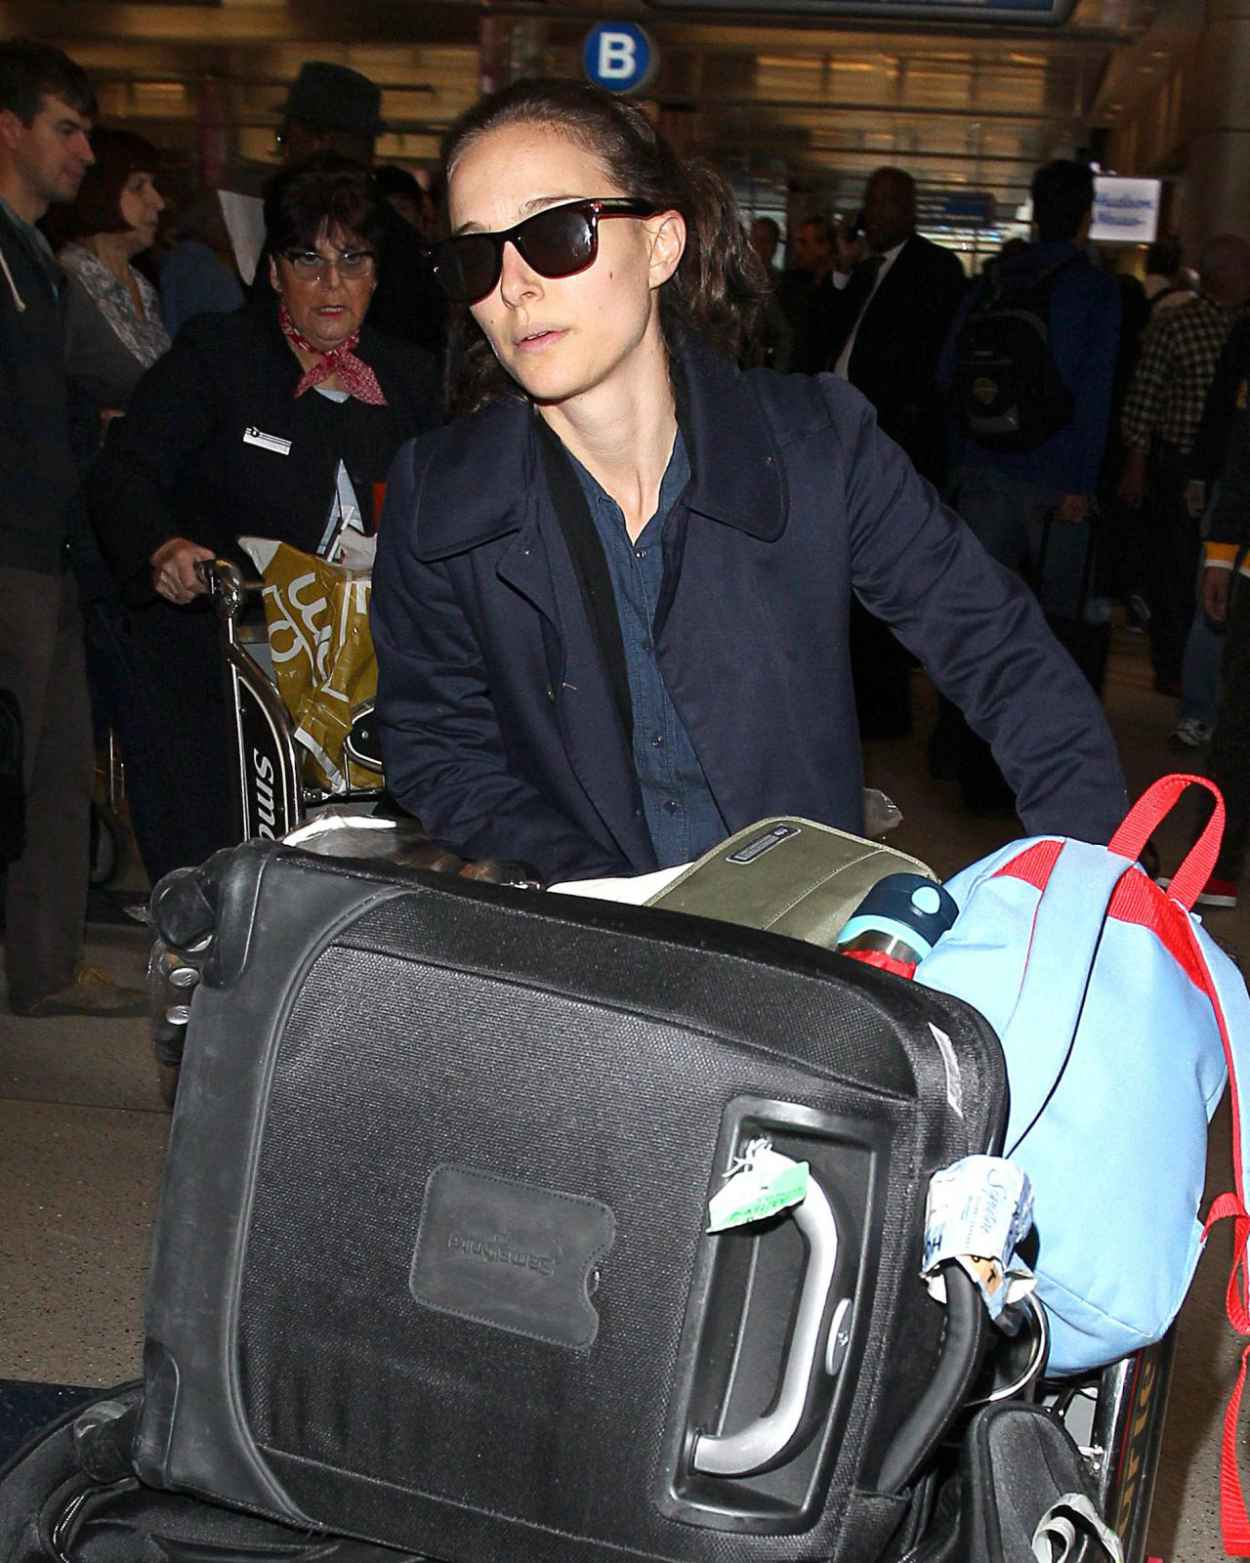 Natalie Portman at LAX Airport - November 2015-3